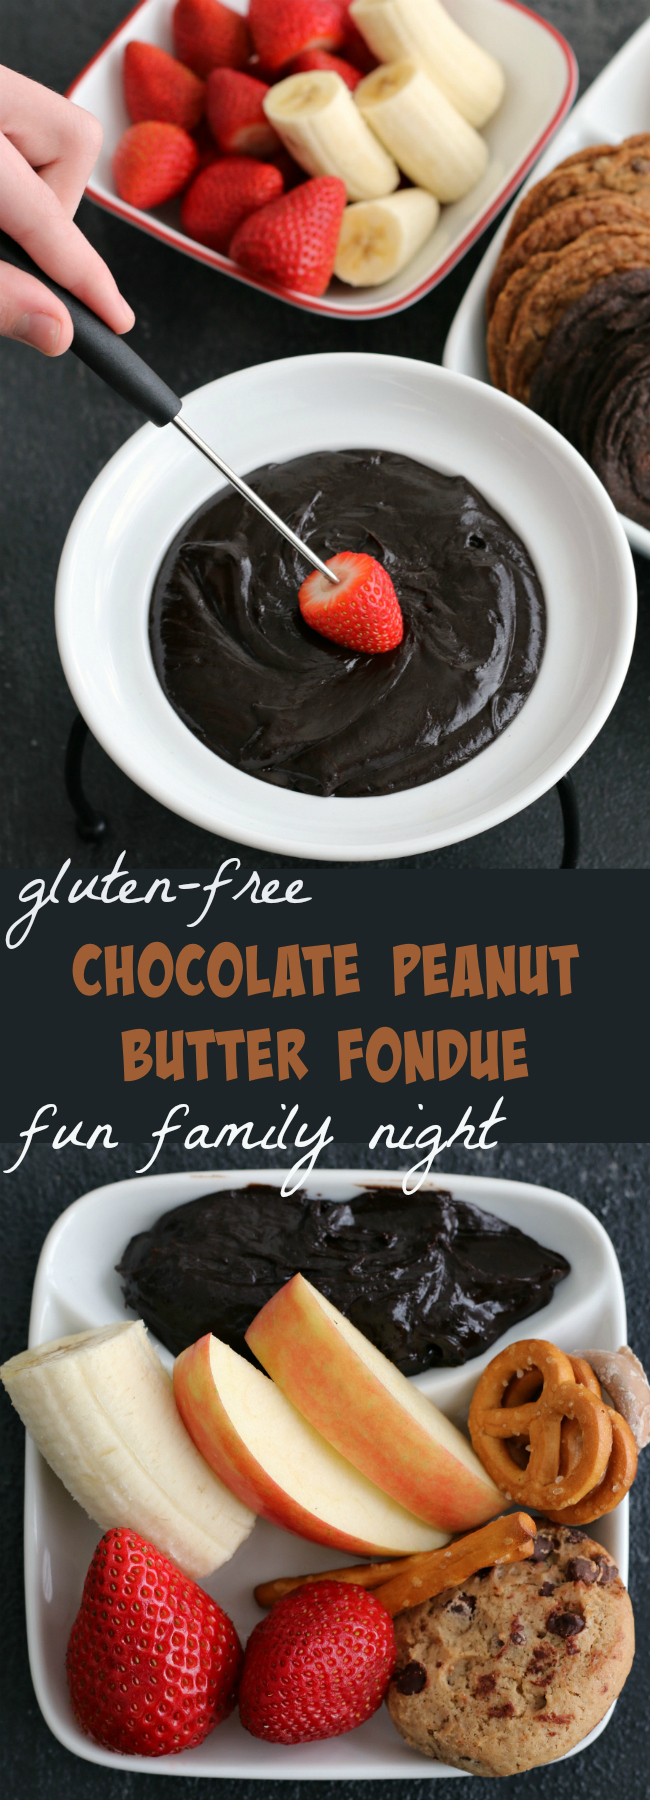 Gluten-free Chocolate Peanut Butter Fondue - Fun Family Night recipe for dessert